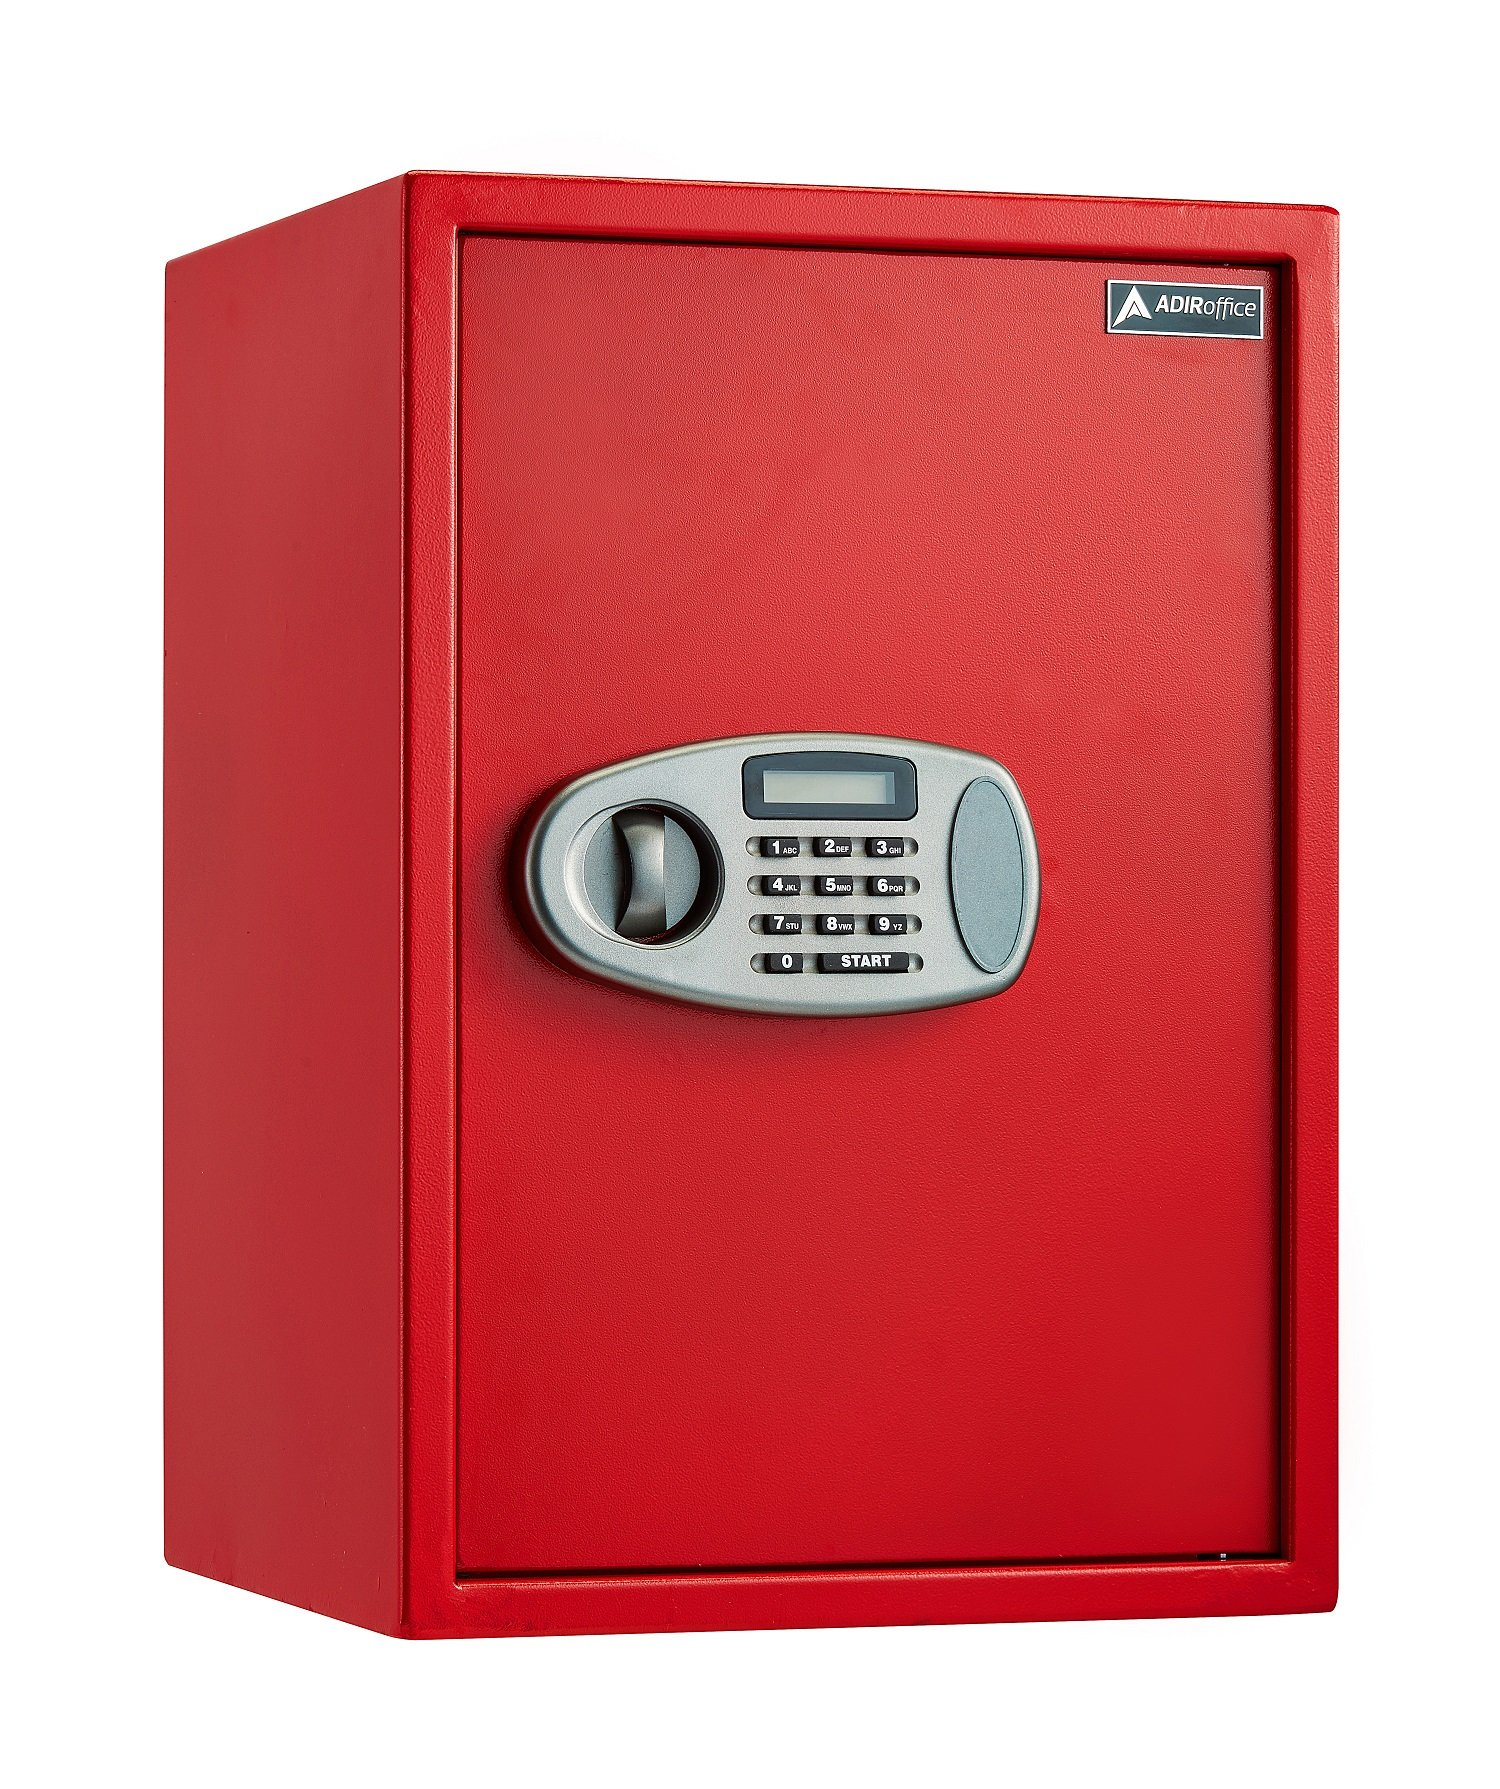 AdirOffice Security Safe with Digital Lock - Red - 2.32 Cubic Feet